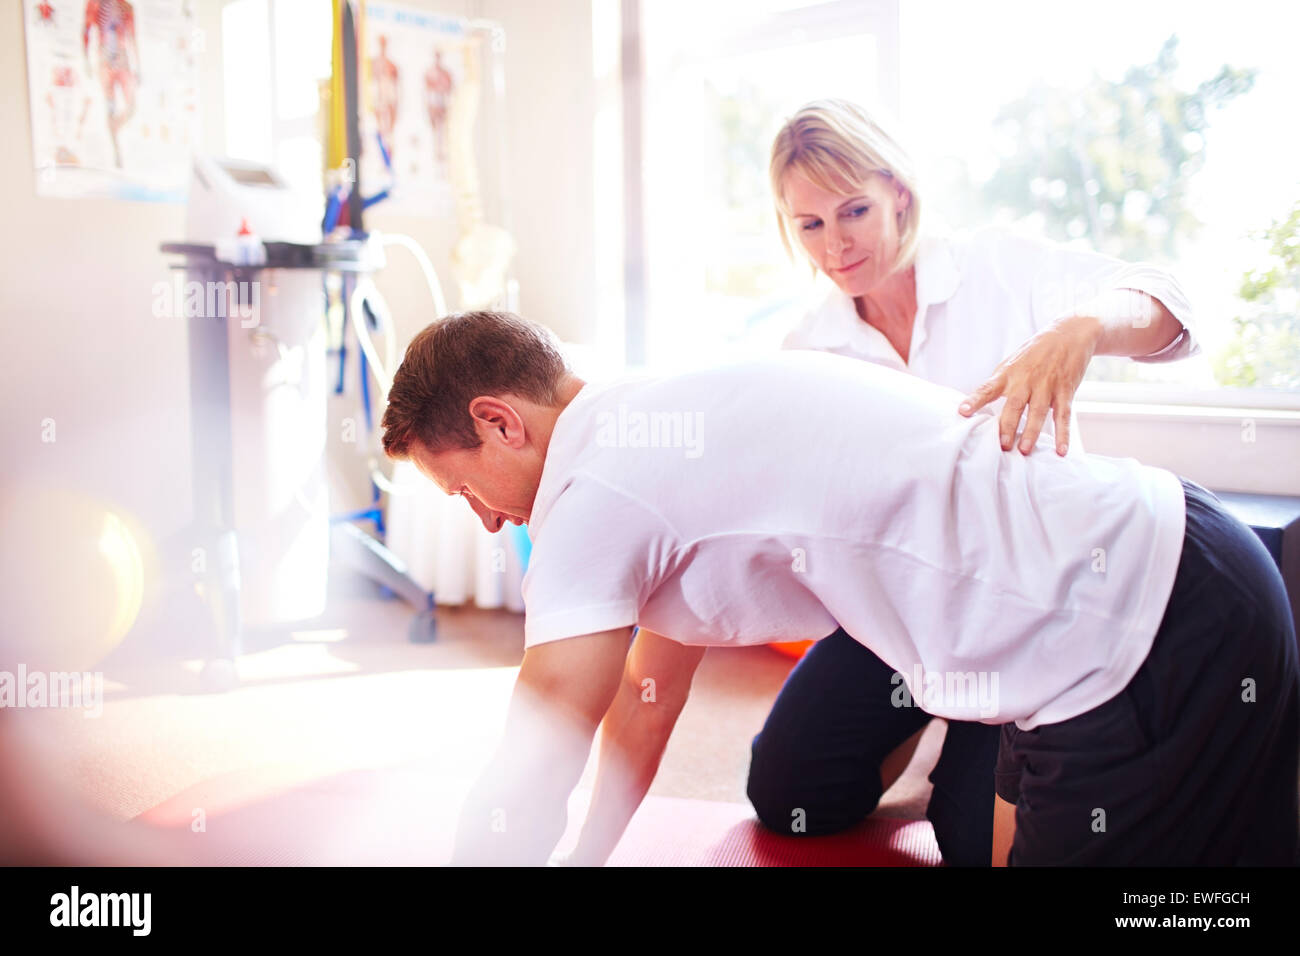 Physical therapist guiding man's back Stock Photo